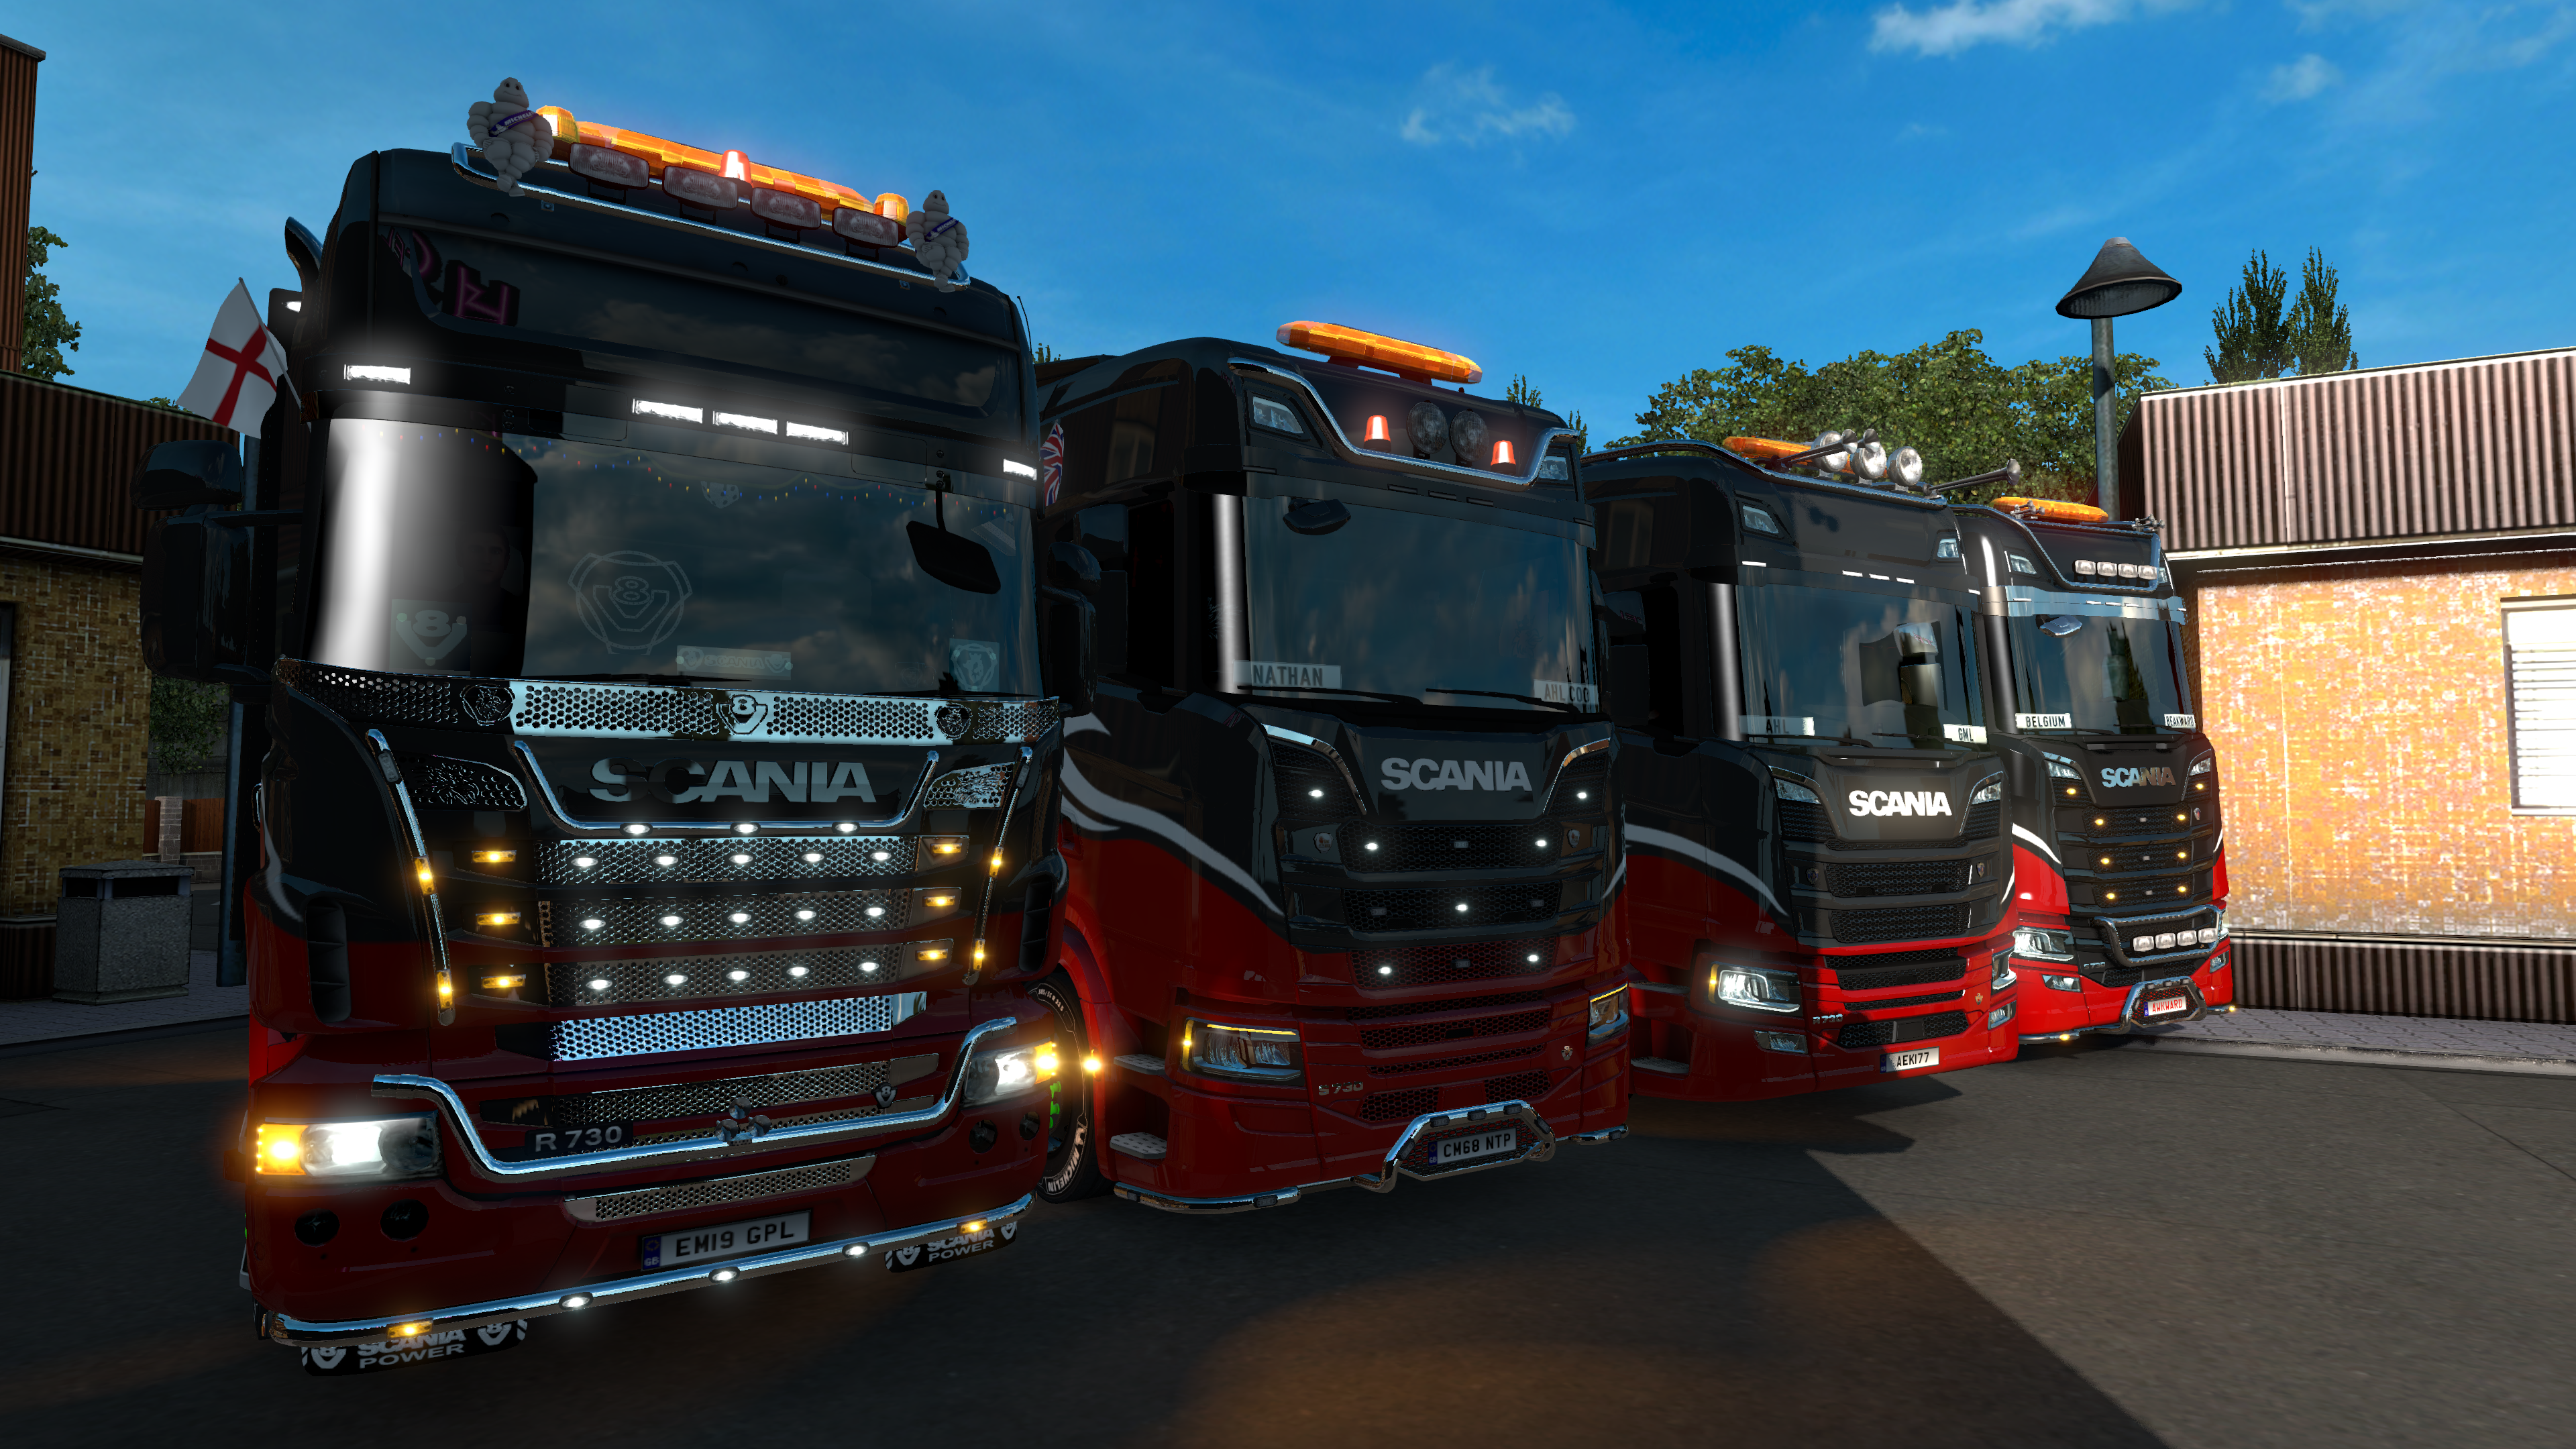 ets2_20190321_201234_00.png